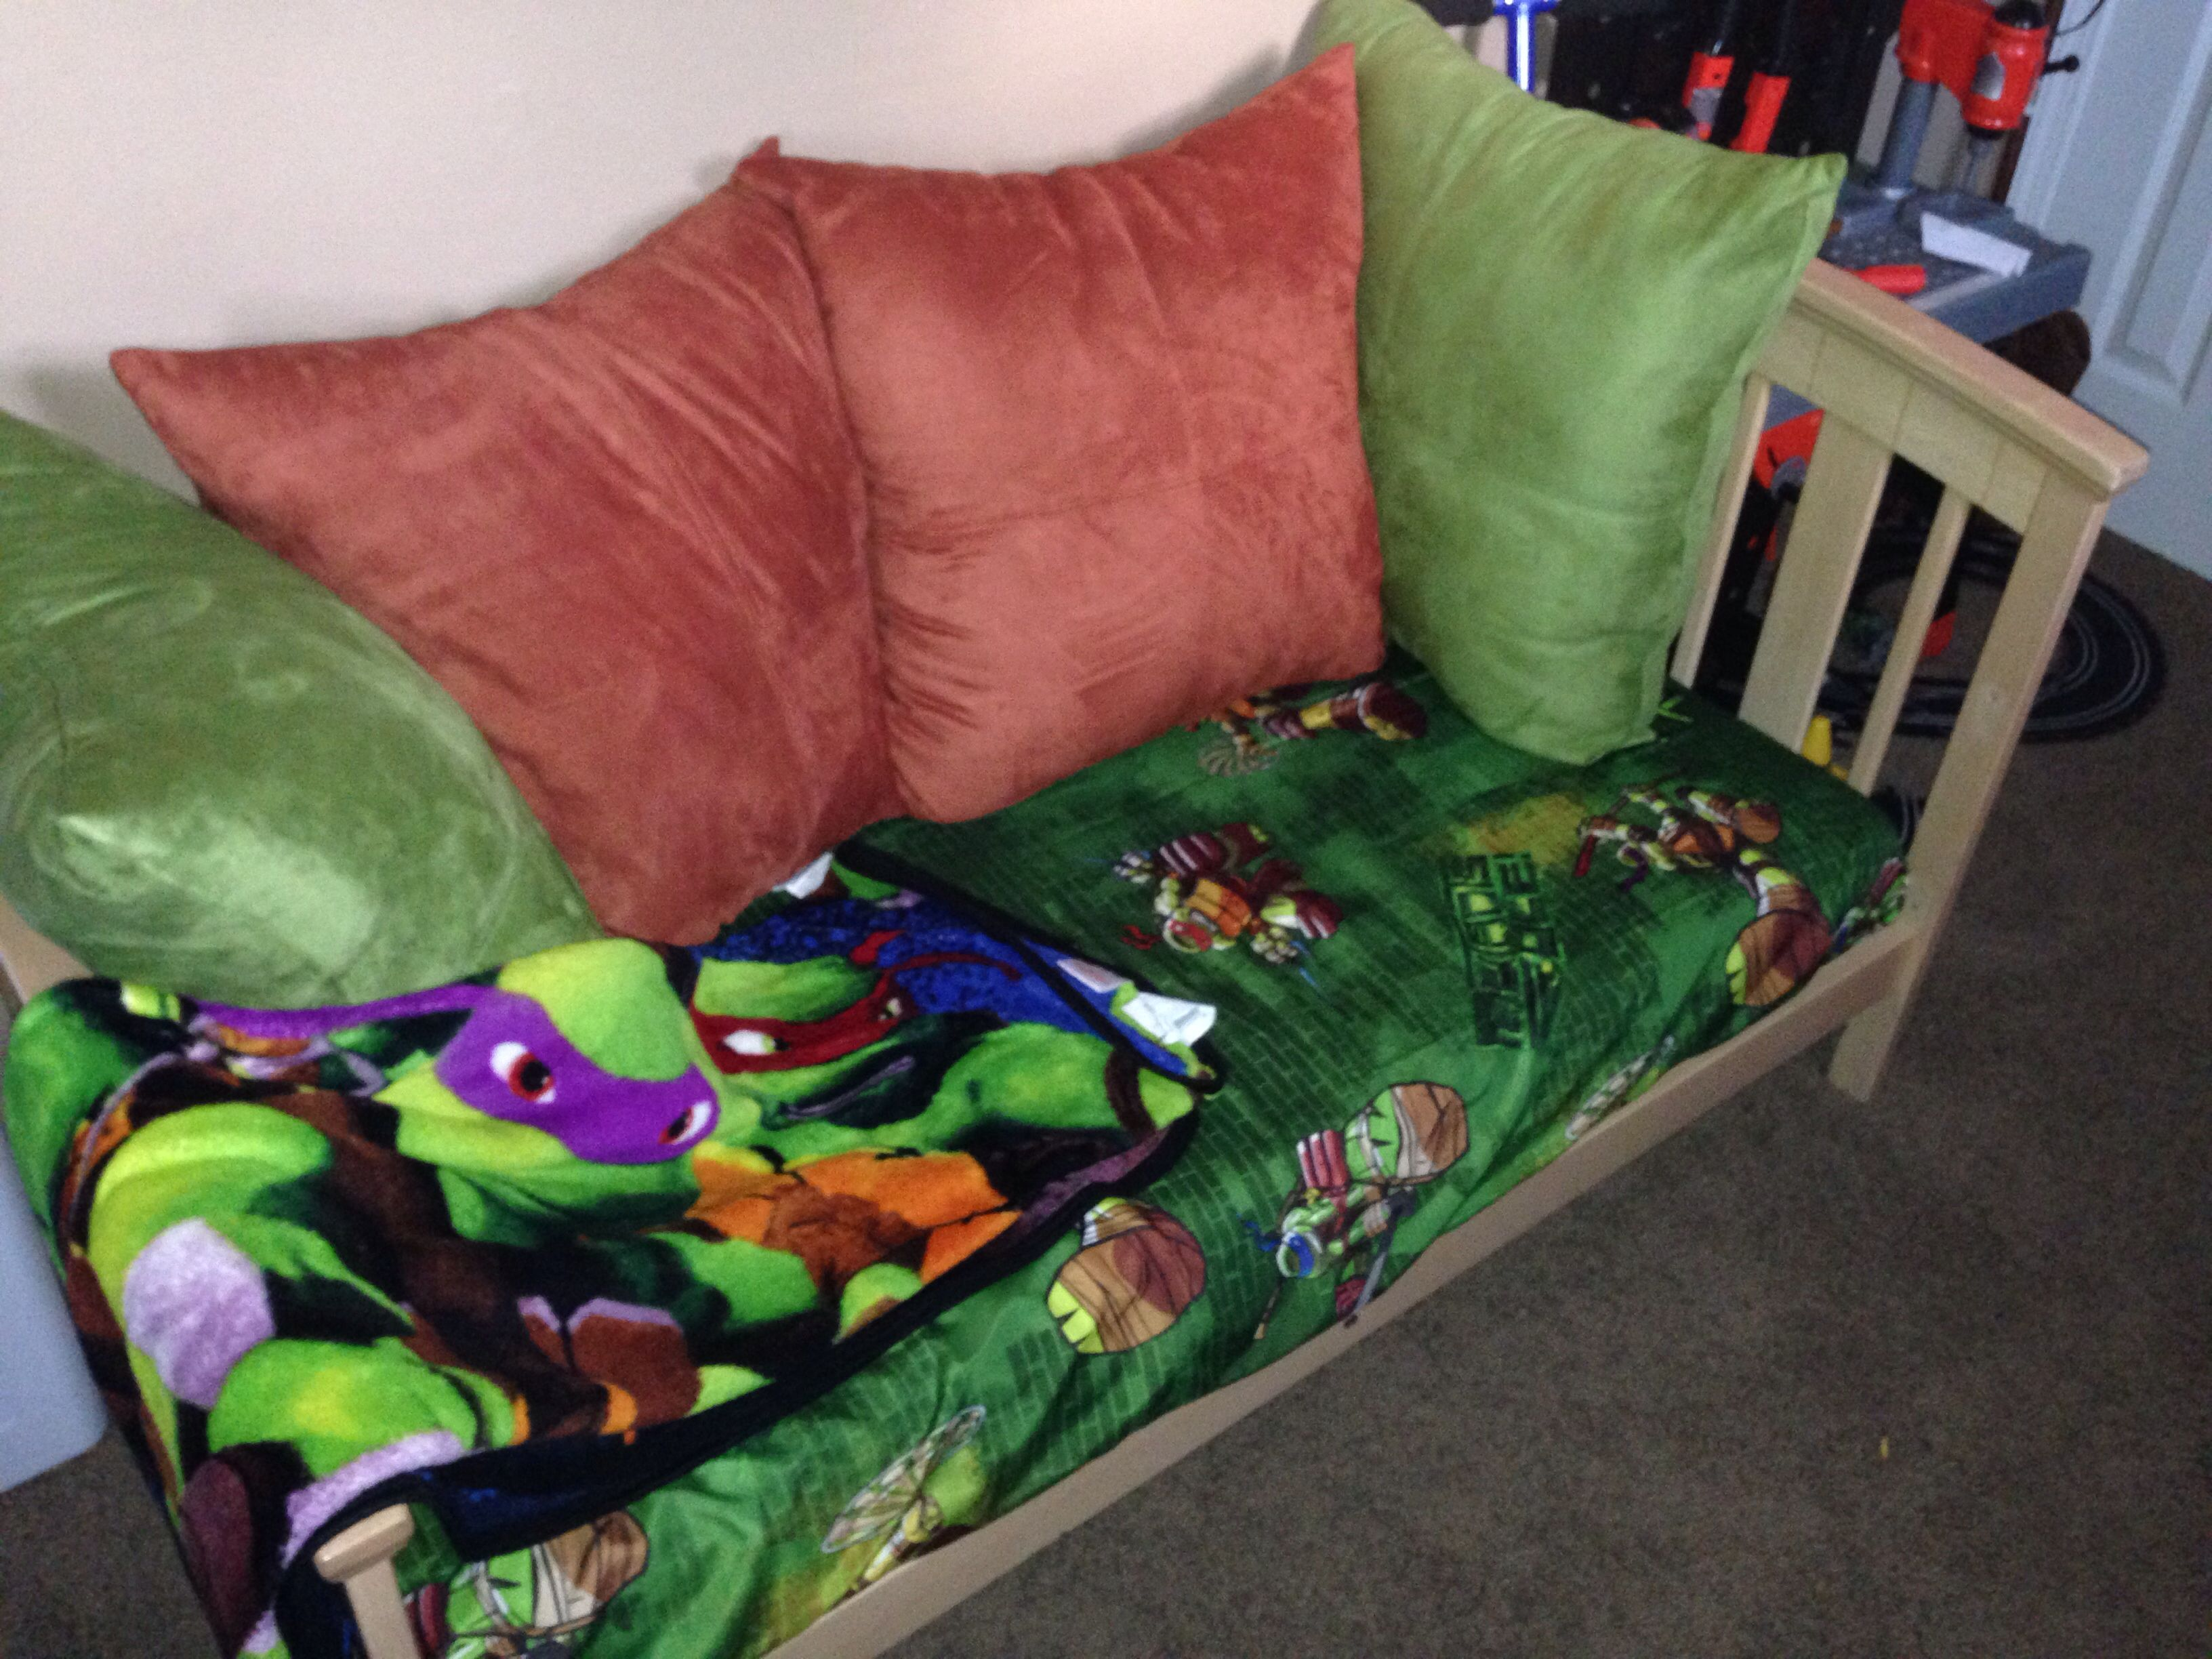 Ninja turtle bedroom - Turned My Sons Old Toddler Bed Into A Couch To Match His Ninja Turtle Room